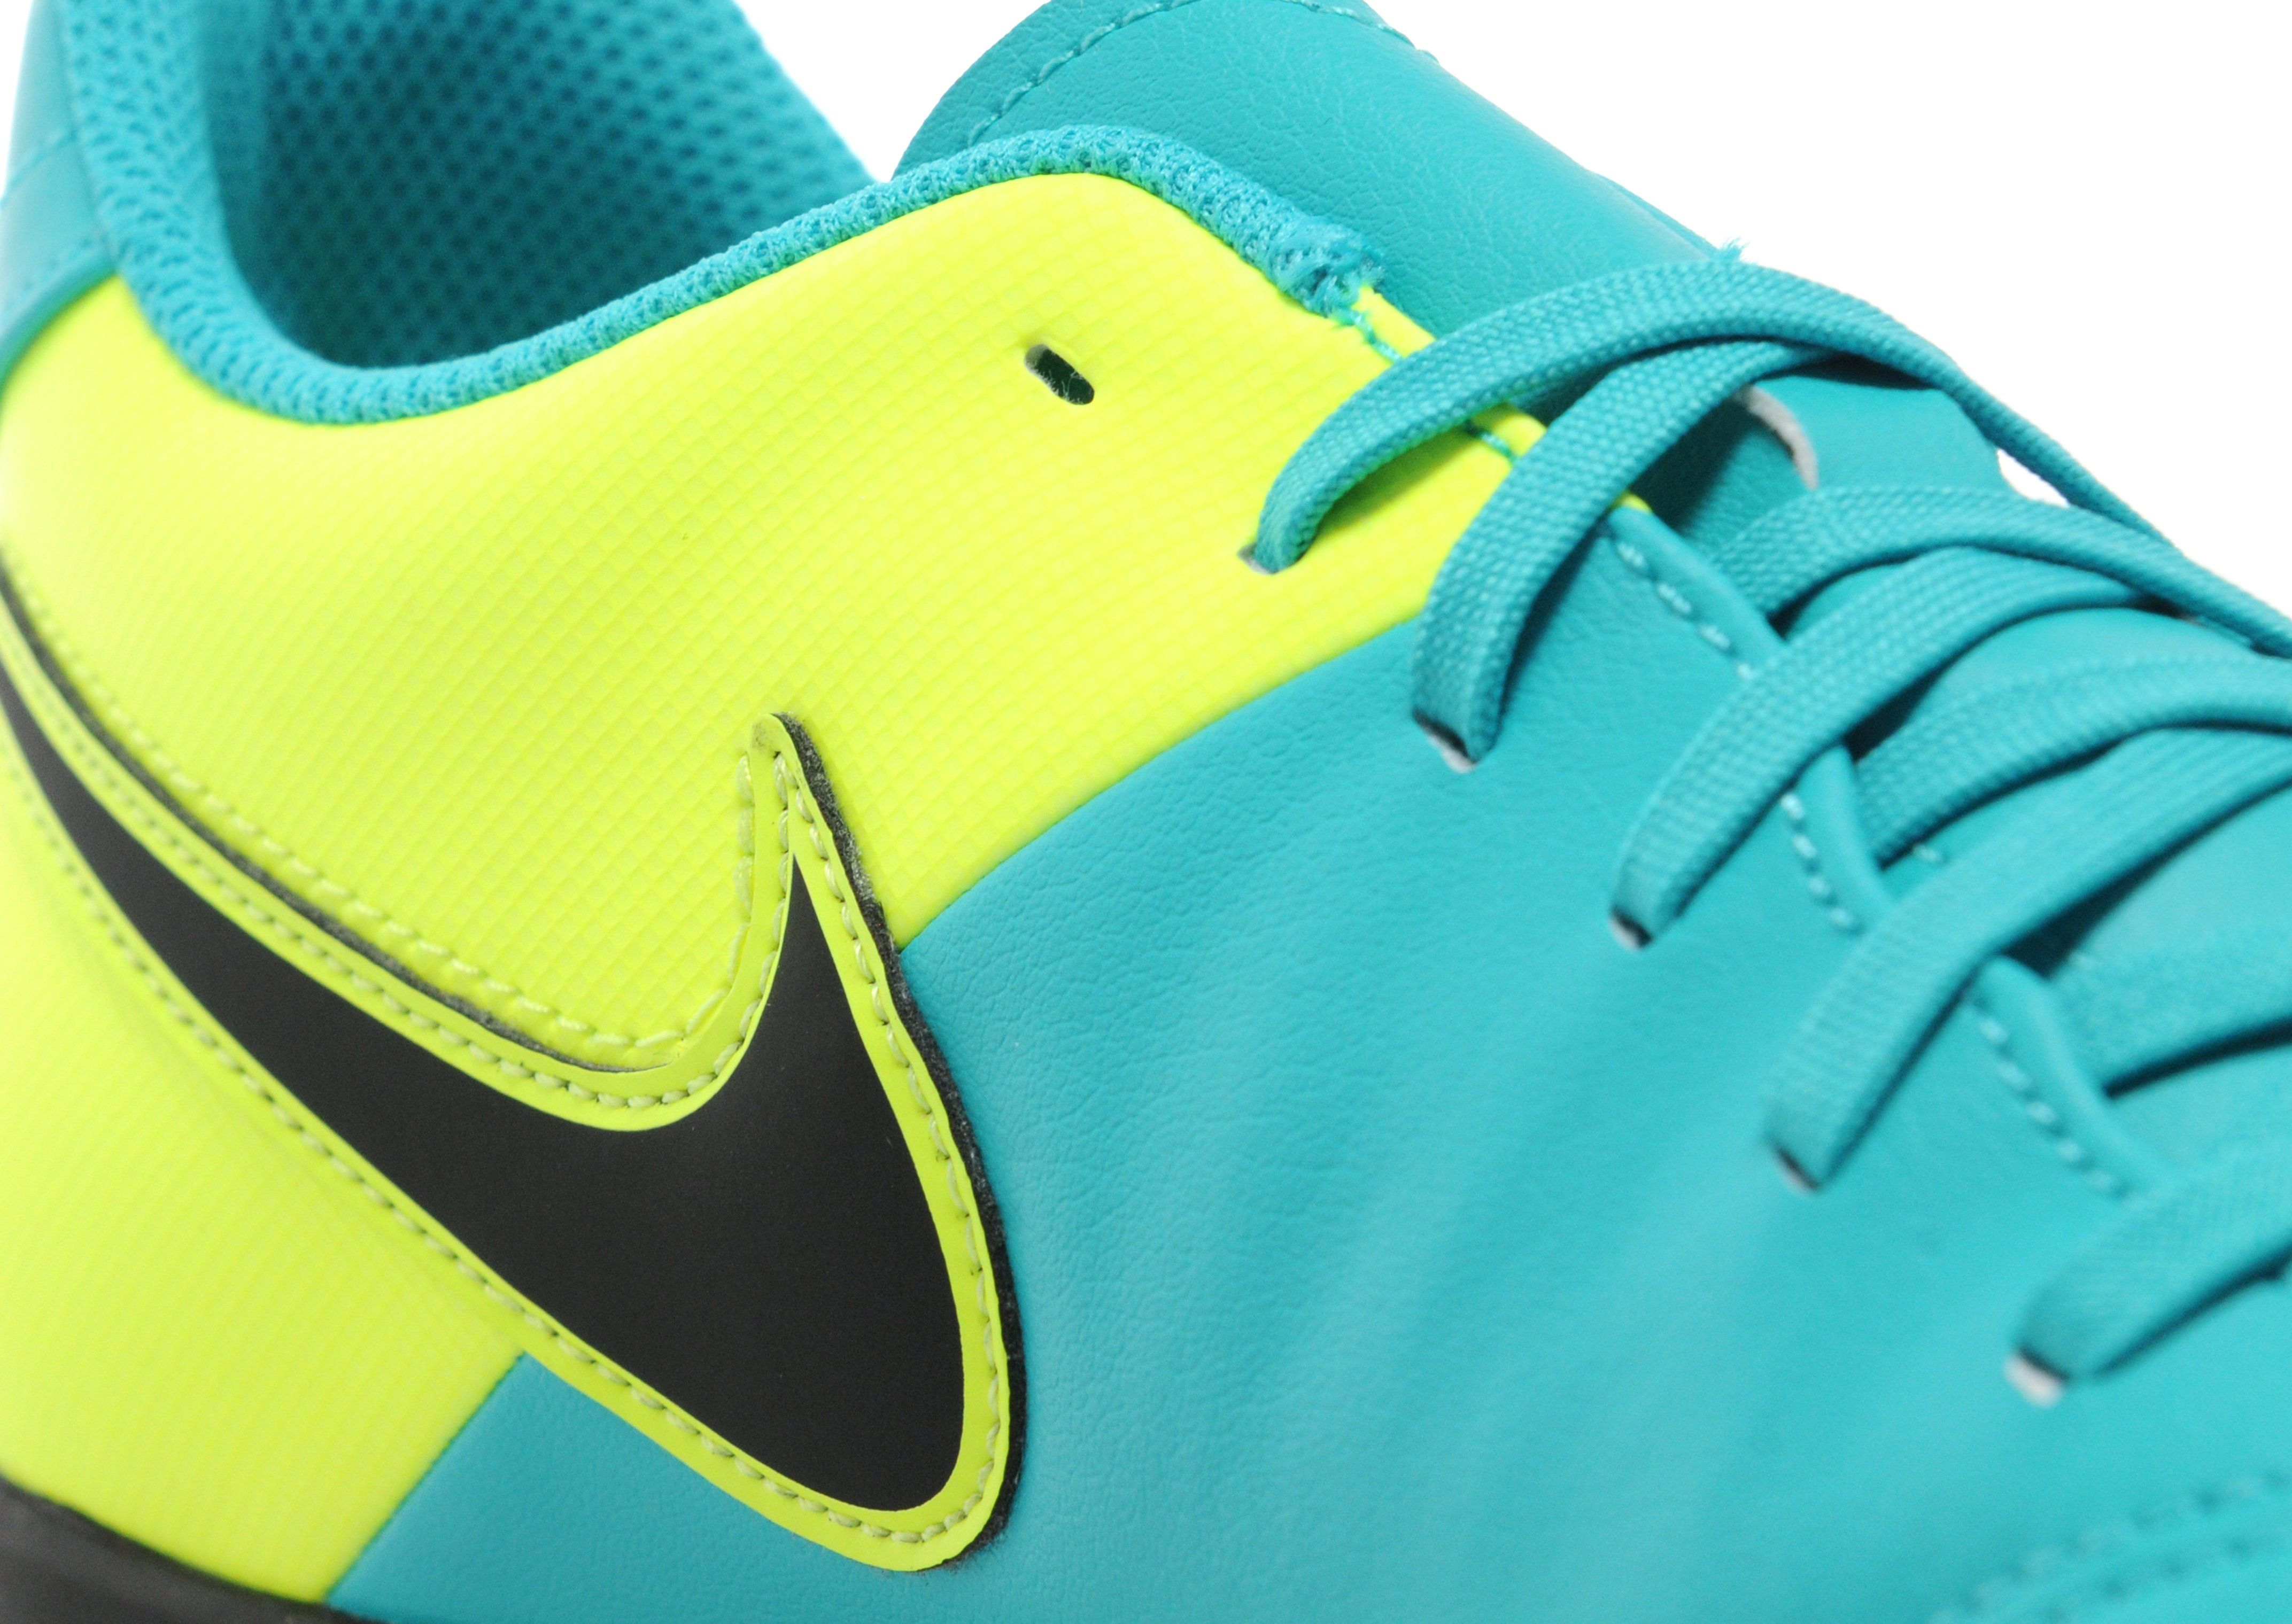 Nike Spark Brilliance Tiempo Rio Firm Ground